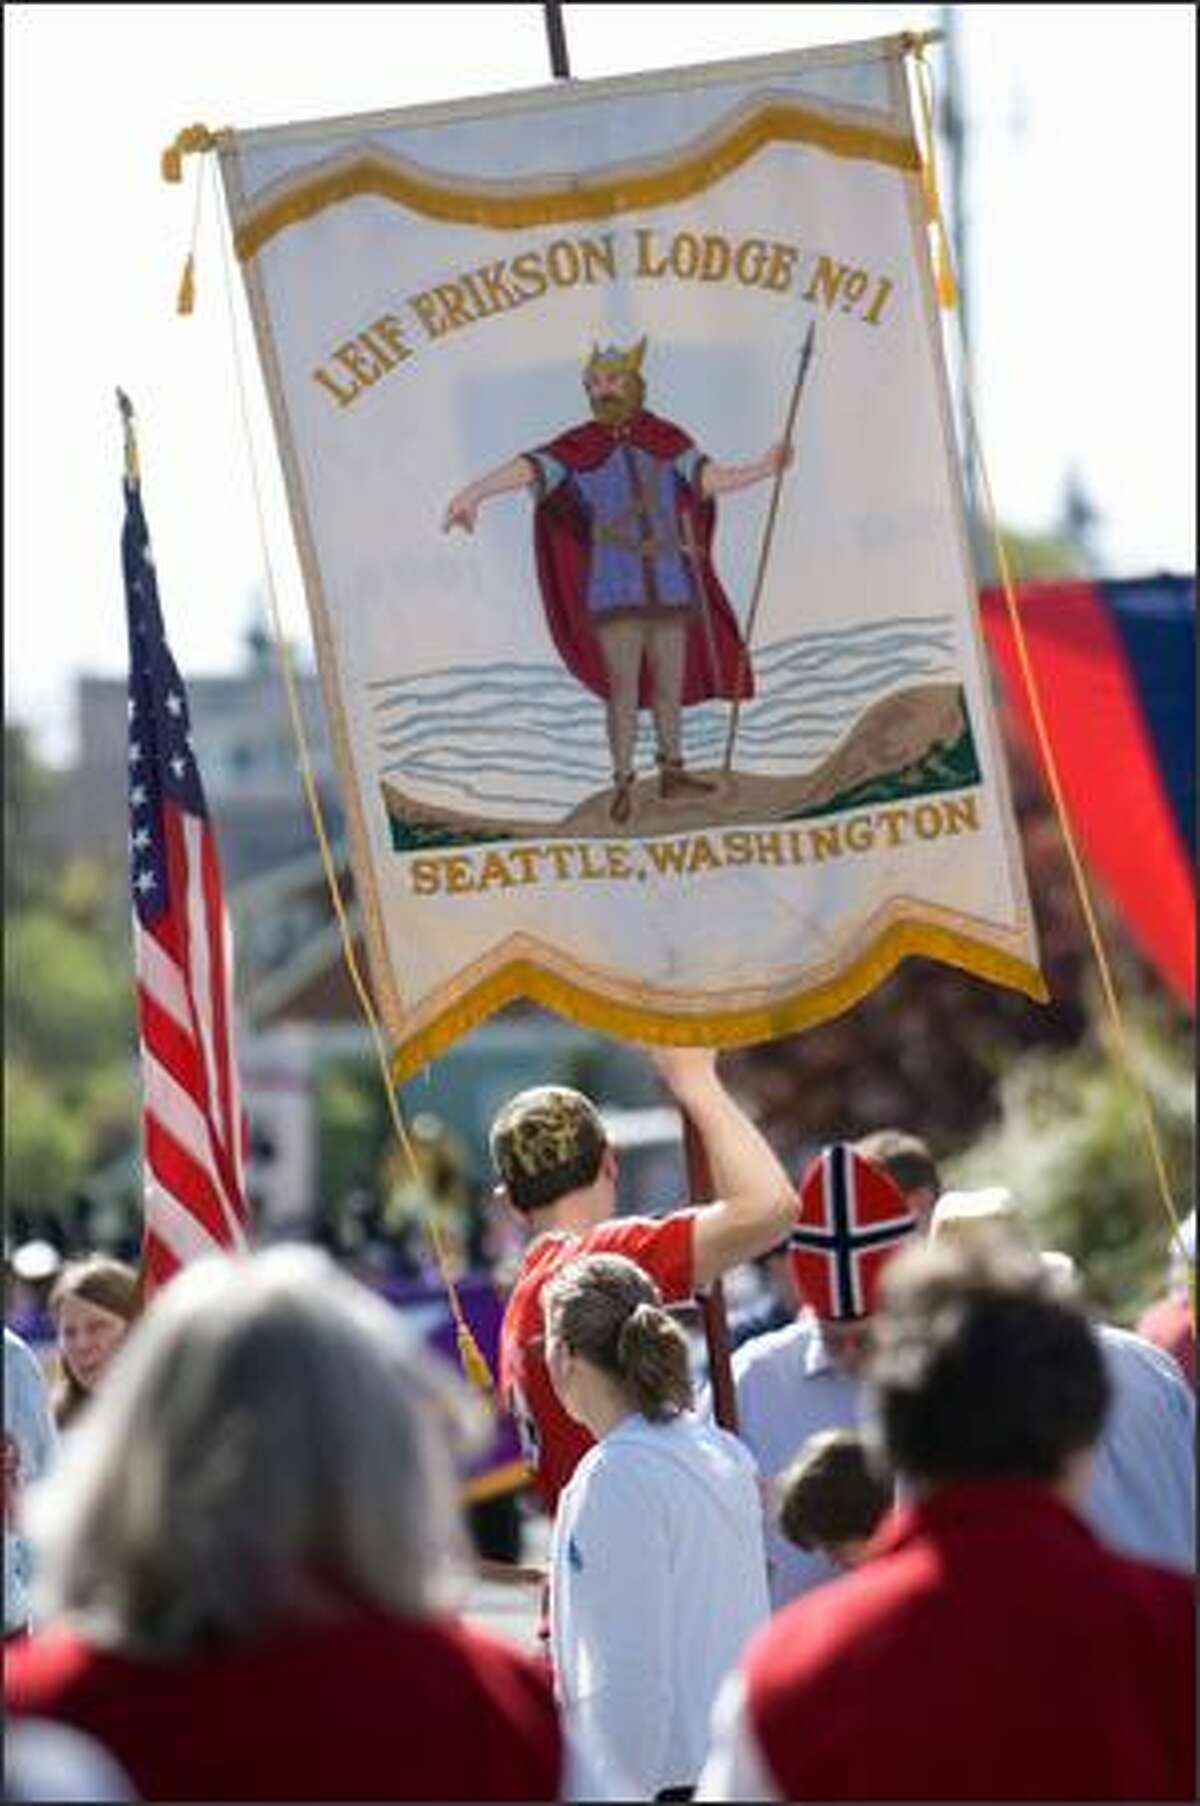 A banner for the Leif Erikson lodge is held up by Court Potter before the start of the Norwegian Constitution Day parade in Ballard.